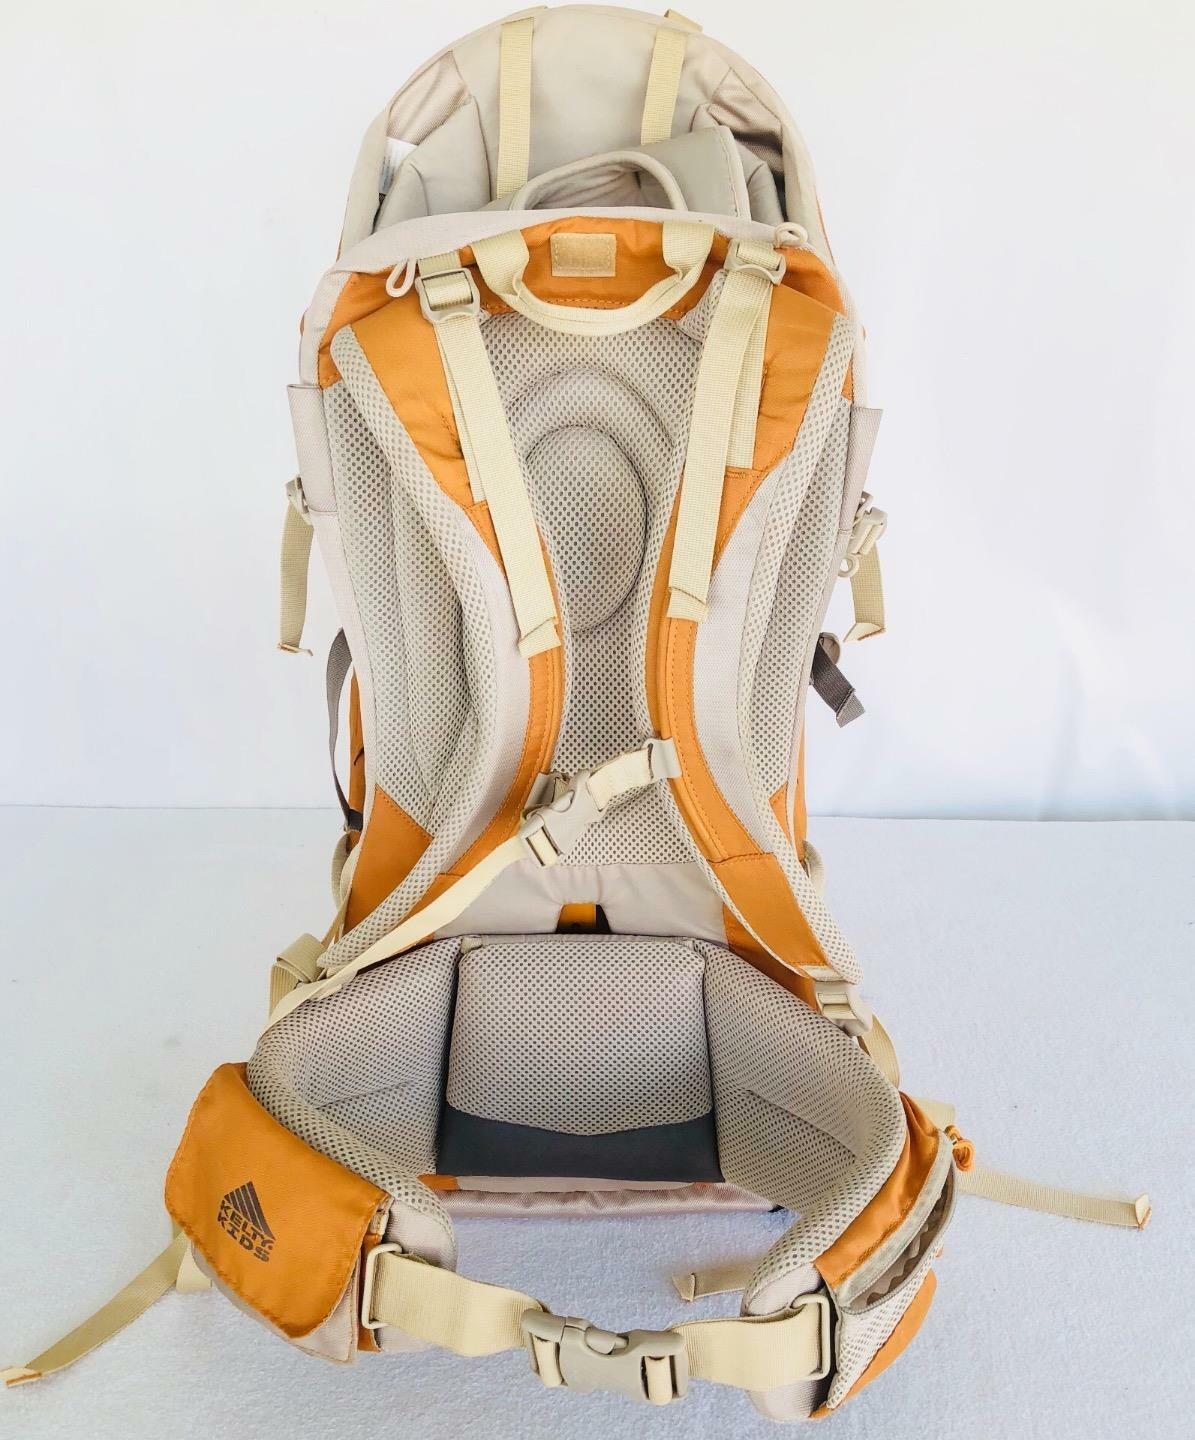 Kelty bambini FC 2.0 External Frame campeggio Hire Backpack Excellent Condition